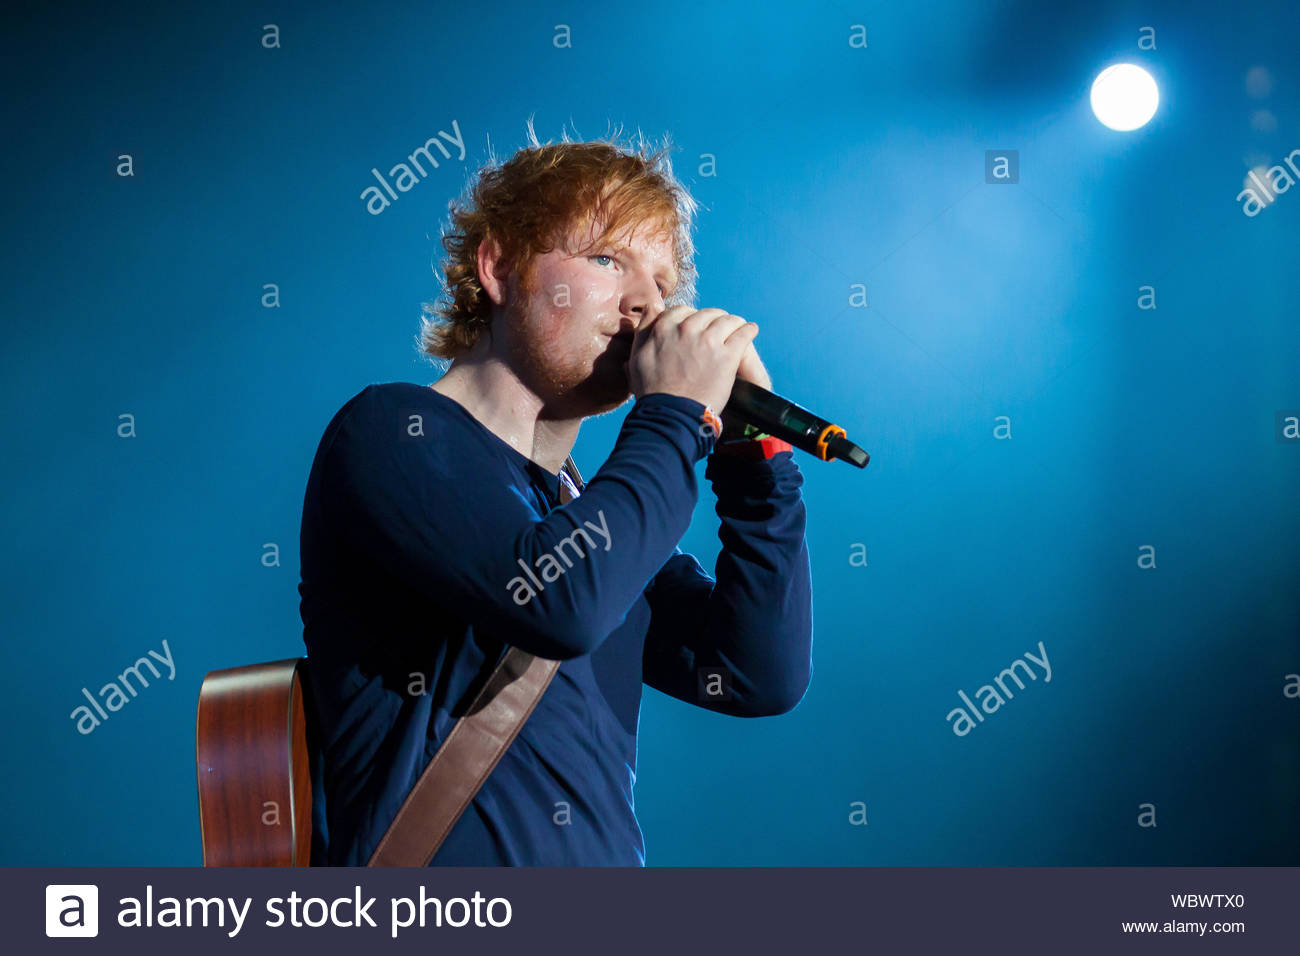 Detroit Mi English Singer Songwriter Ed Sheeran Joins Pop Country Star Taylor Swift On Her Red Tour Akm Gsi May 4 2013 Stock Photo Alamy